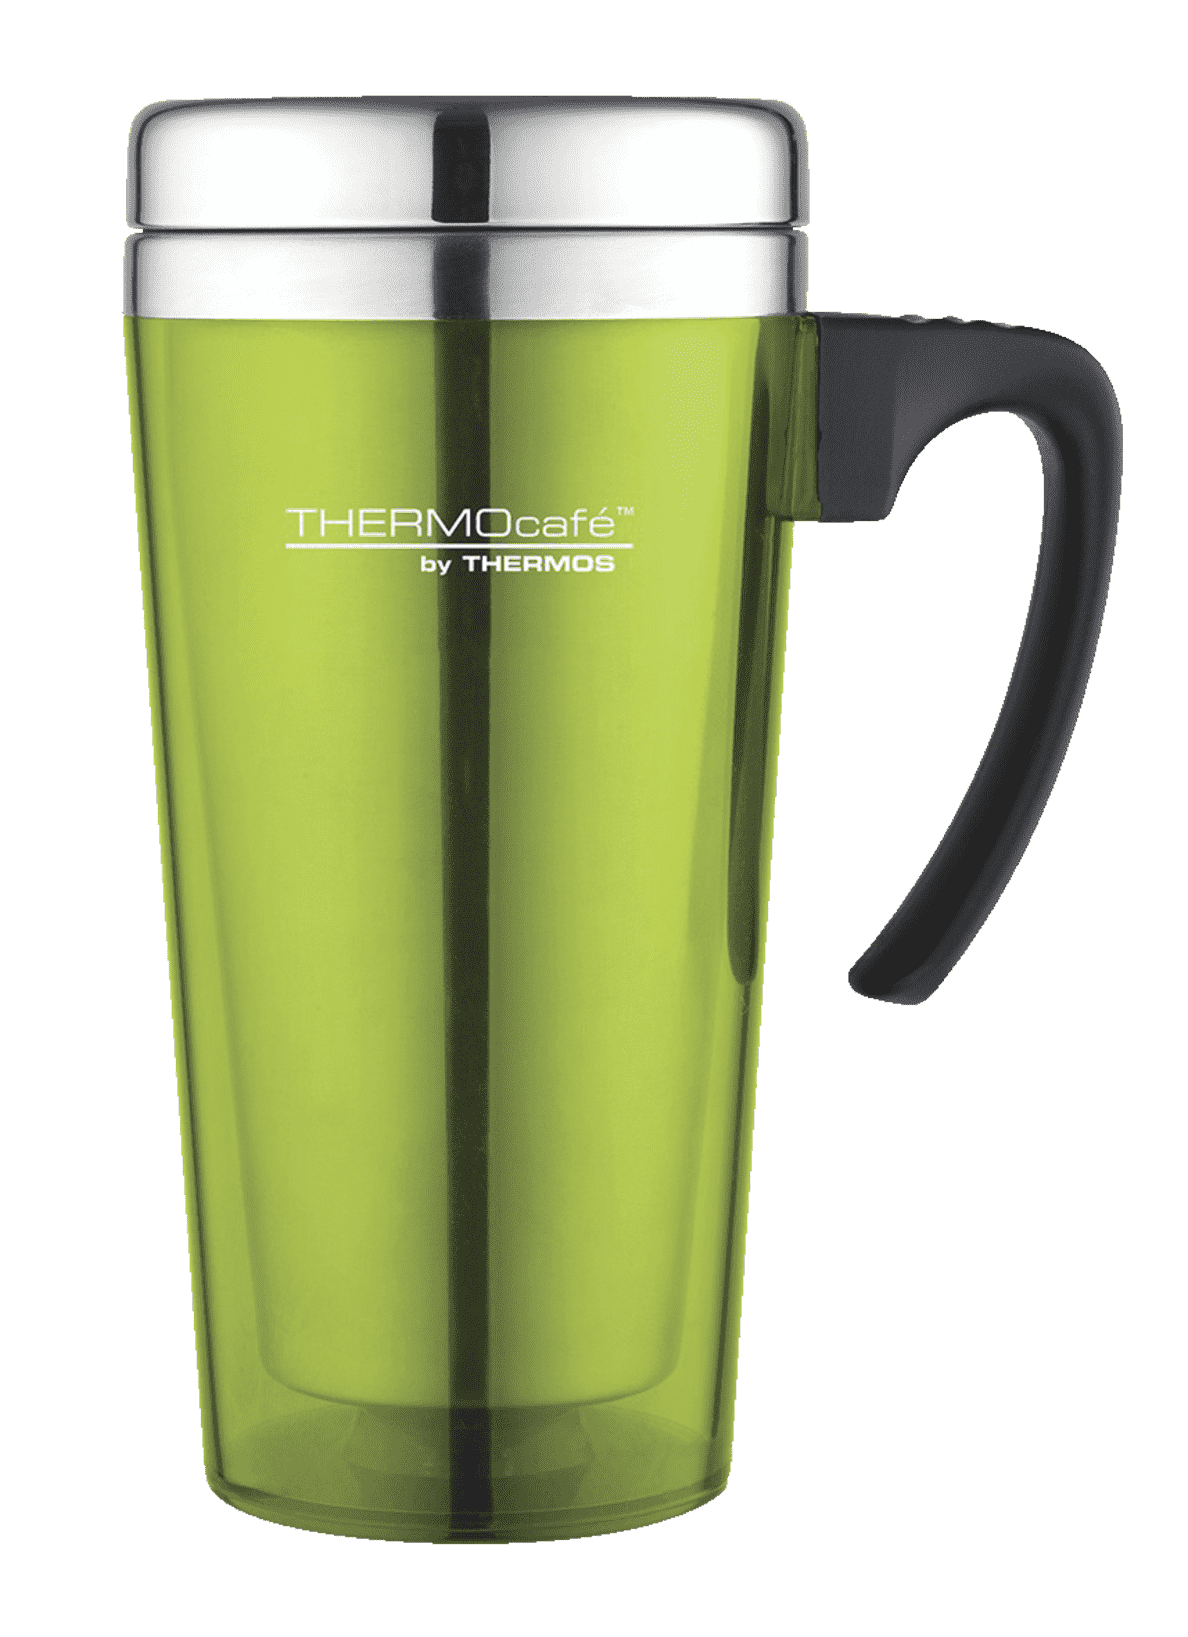 THERMOS  4061.277.040 Color Thermobecher in Grün/Silber | 05010576902122